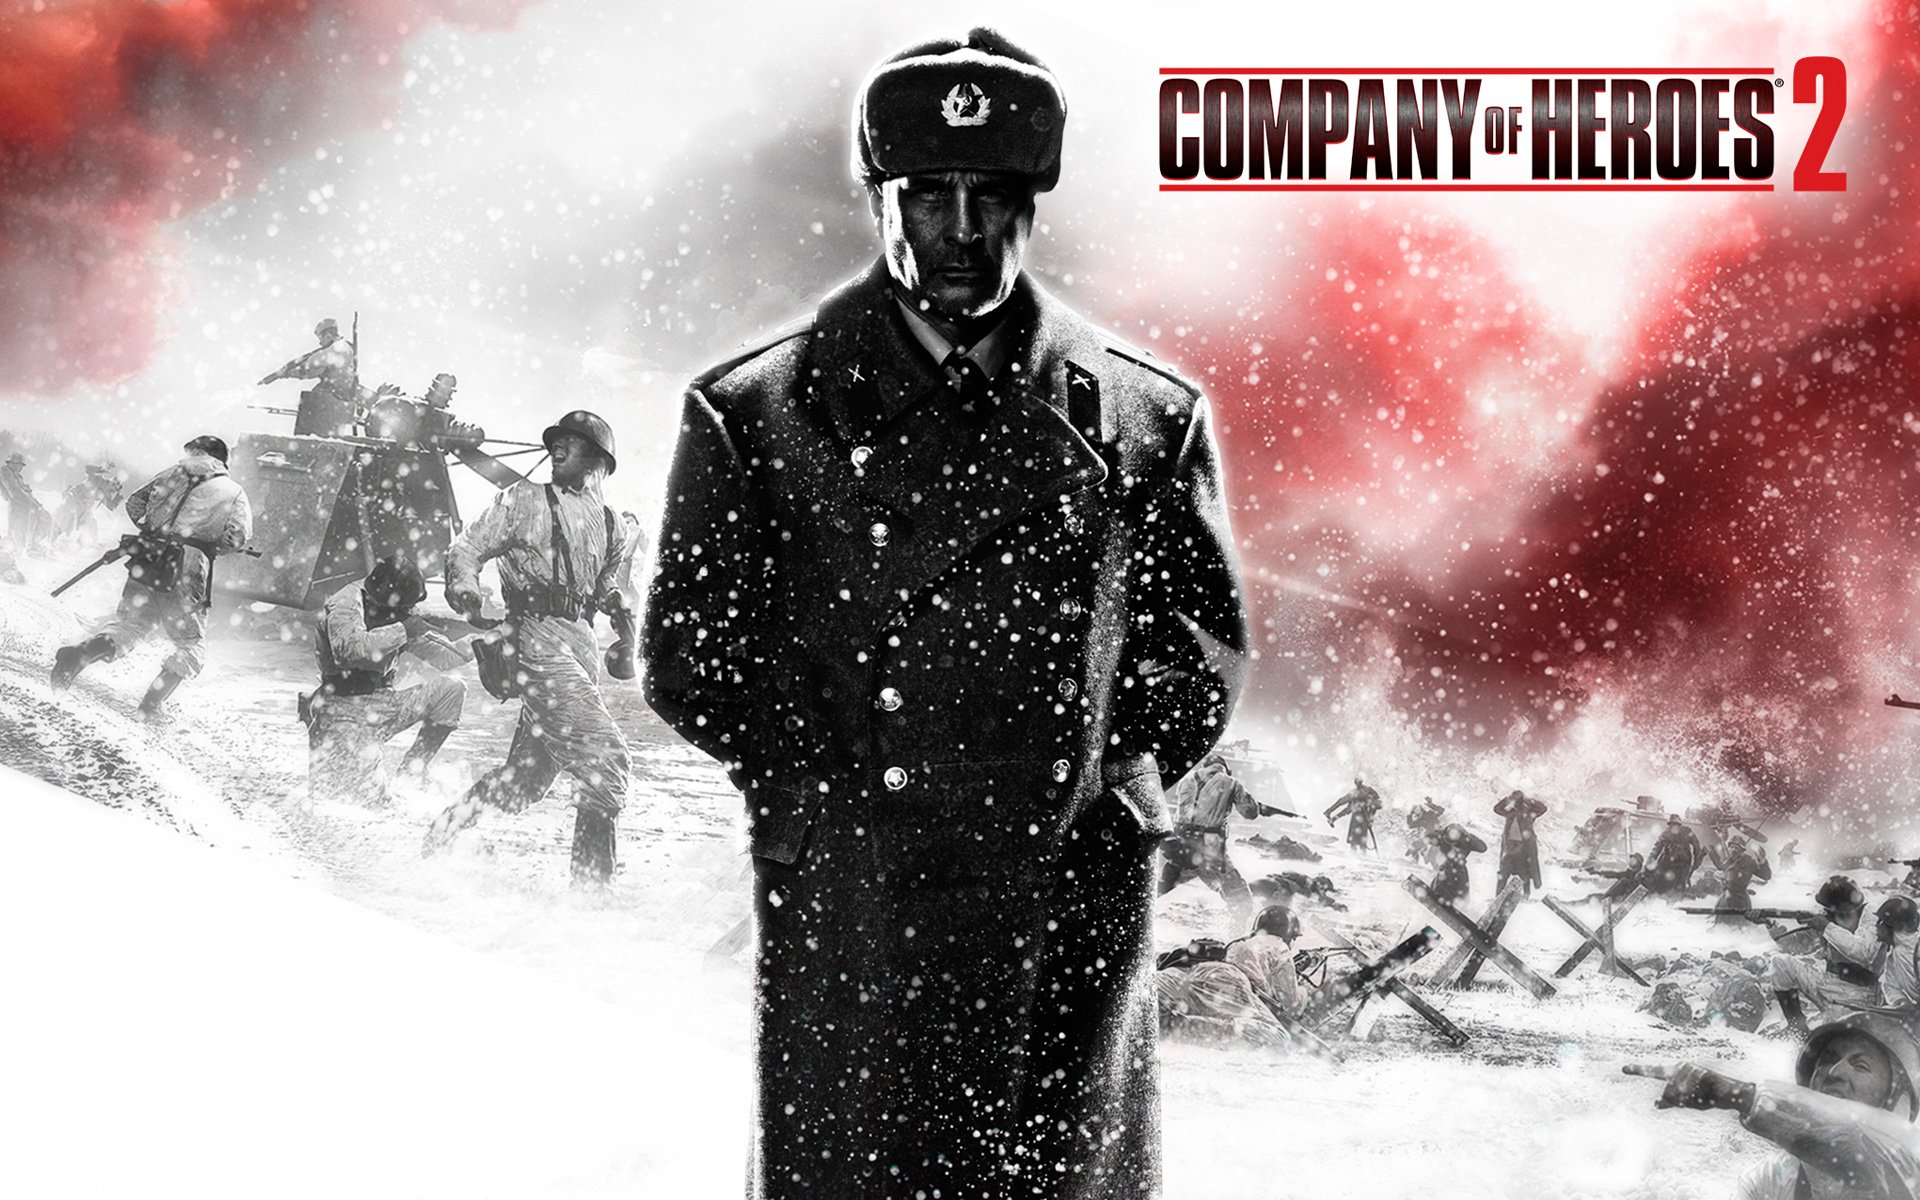 file_7761_2013_company_of_heroes_2_game-wide